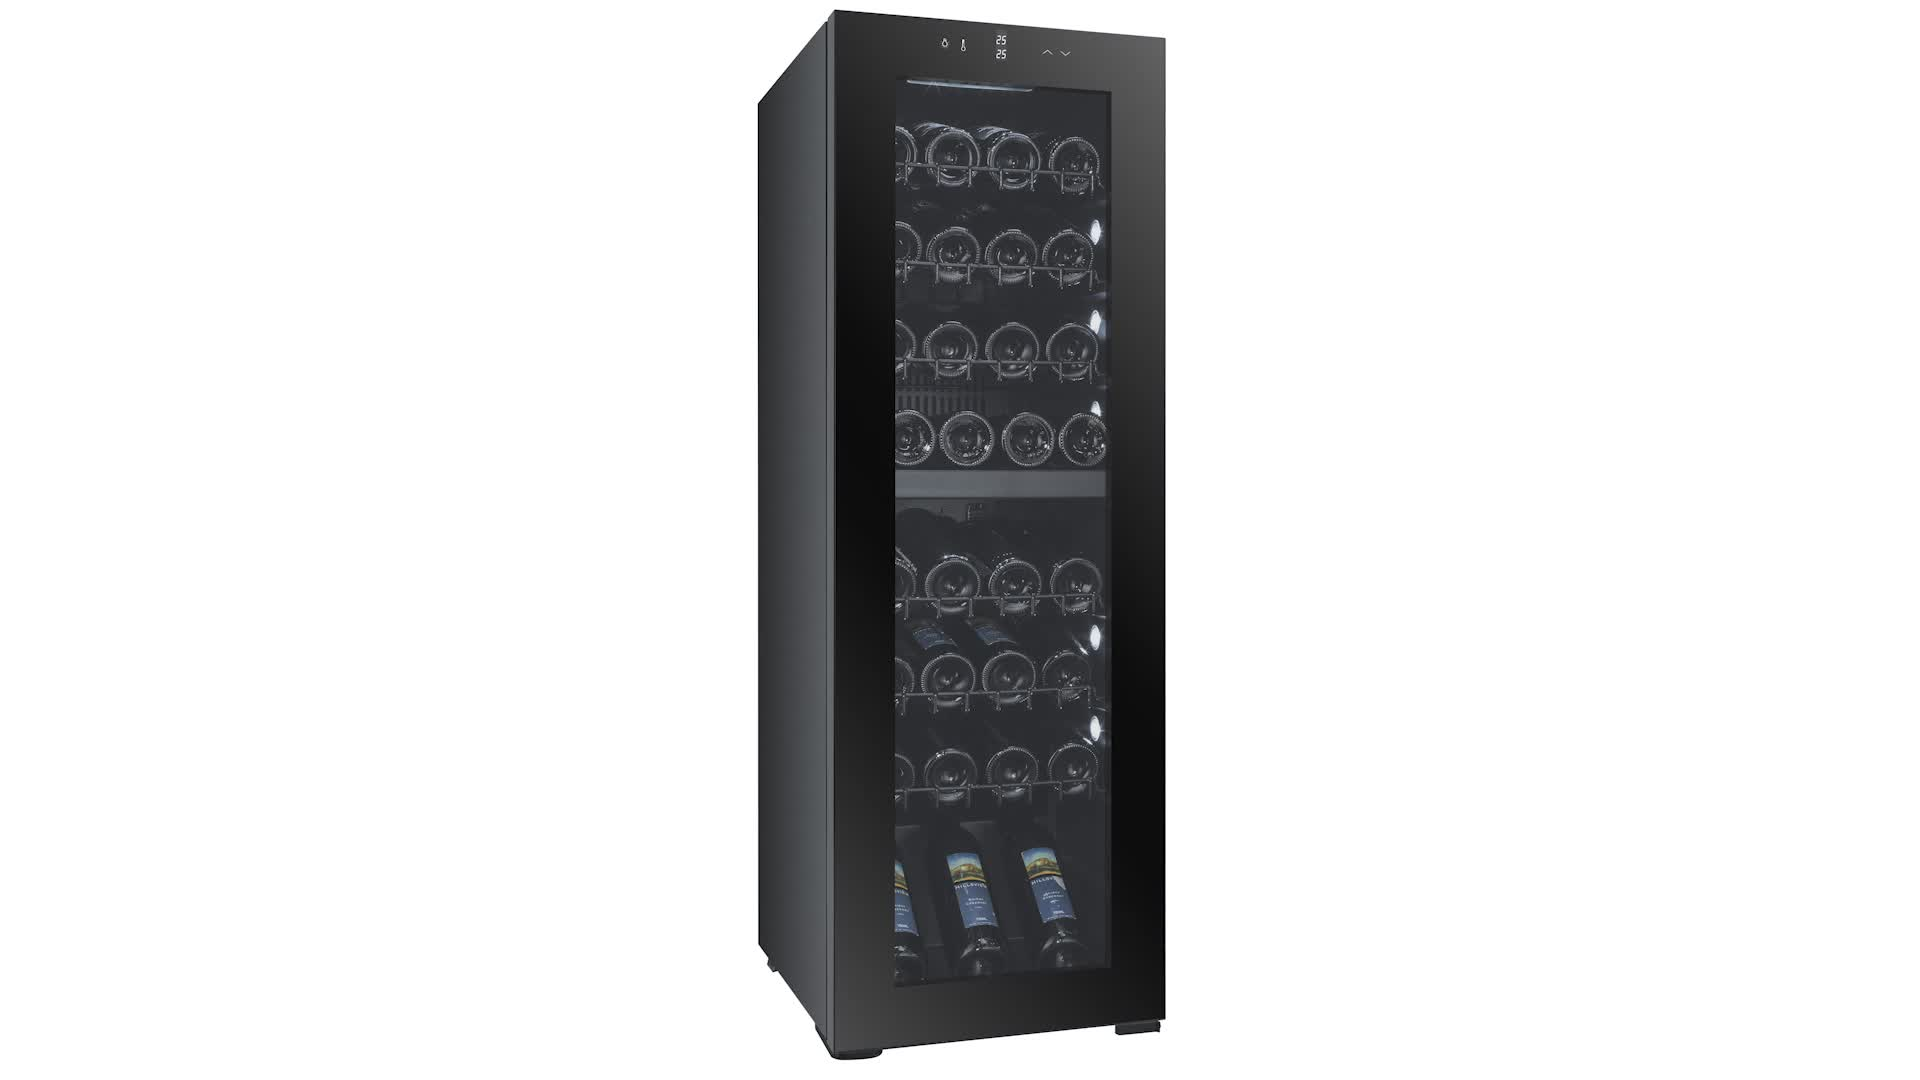 JC-120 Custom 48 Bottle Tall Narrow Wine Fridge, Slim Wine Cooler With Glass Door